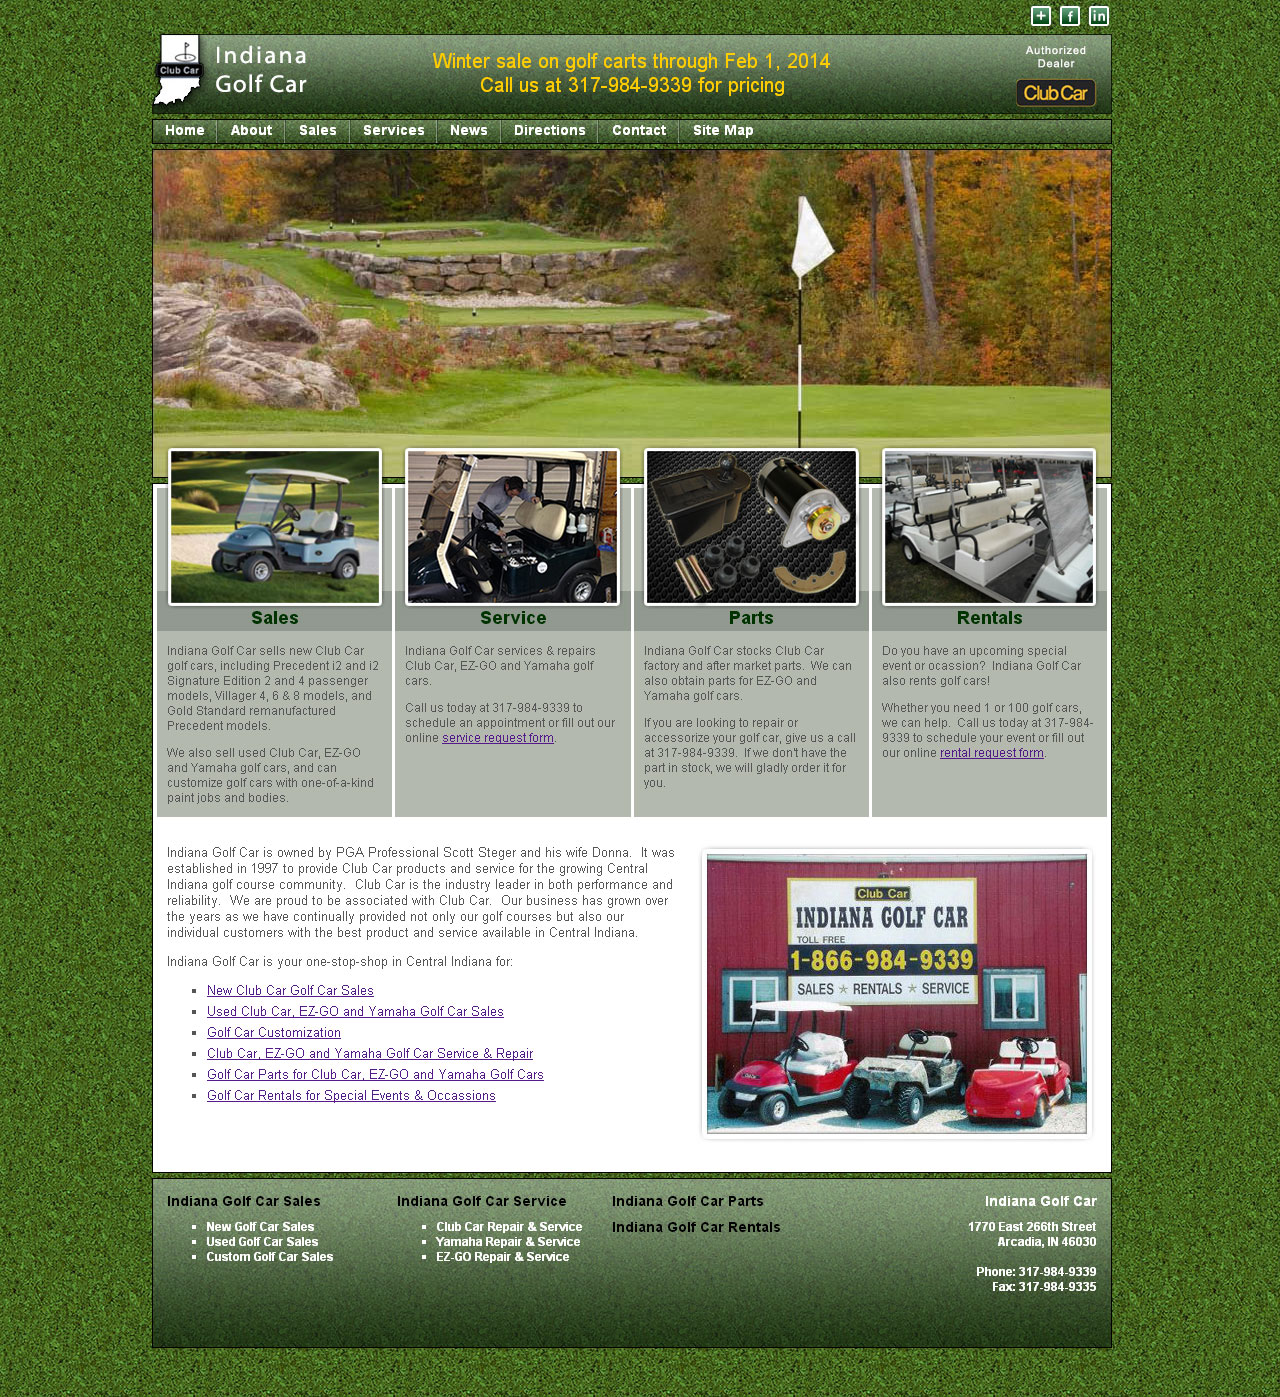 Indiana Golf Car Website